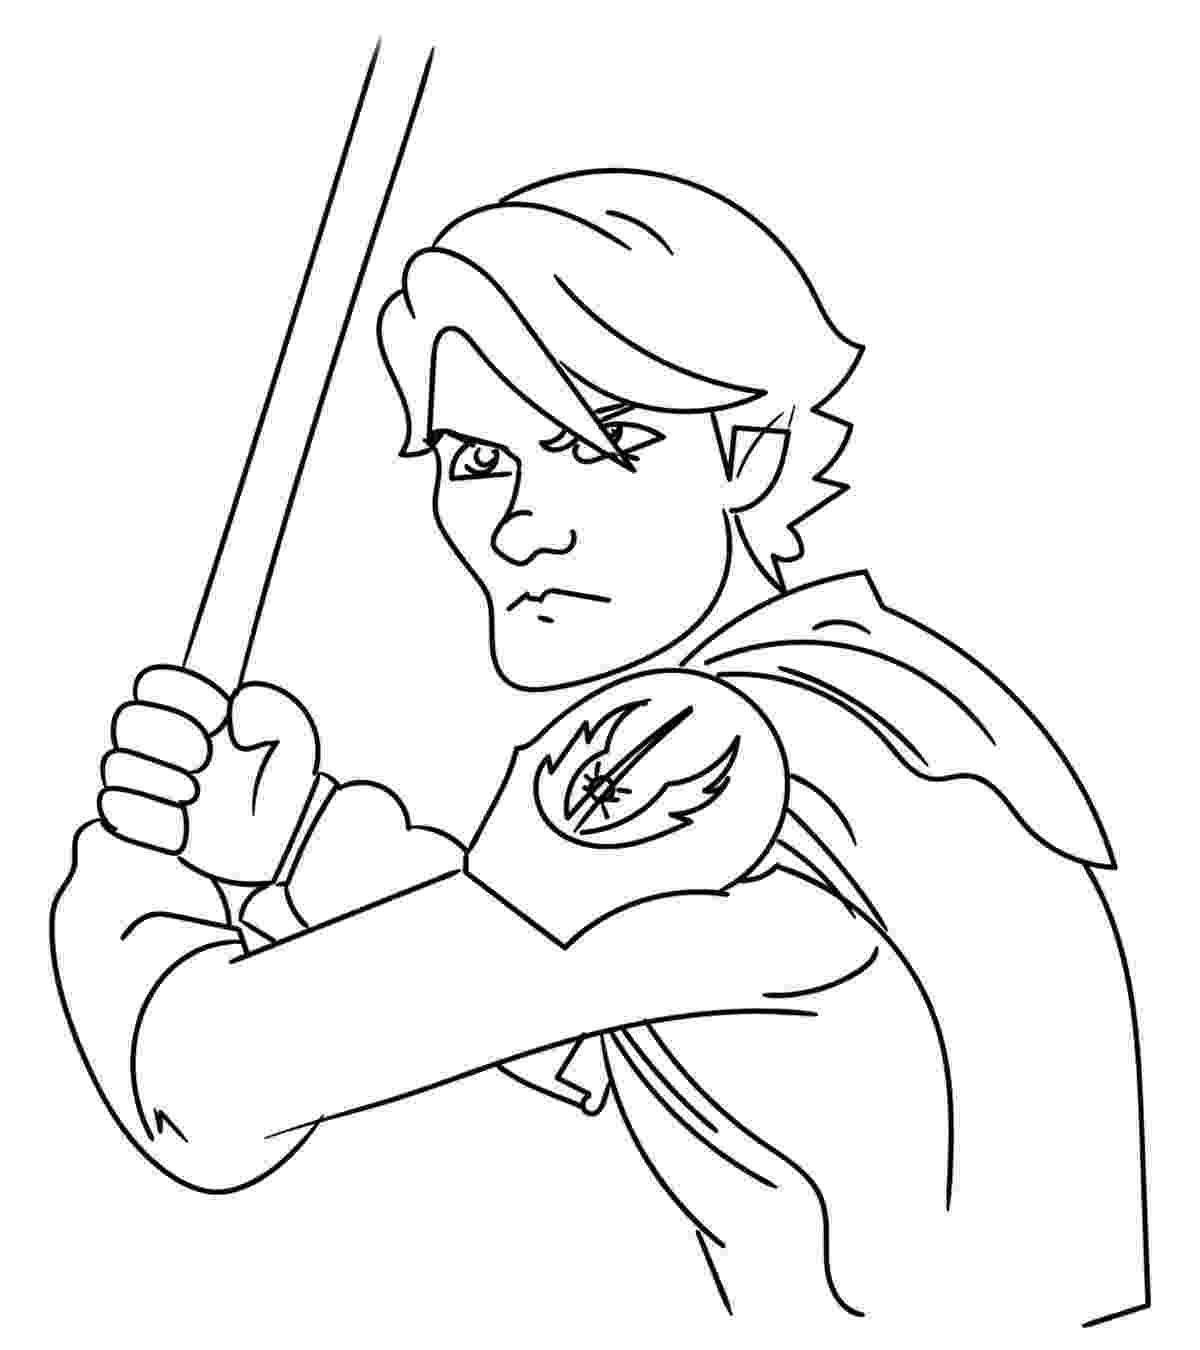 starwars colouring lego star wars coloring pages to download and print for free colouring starwars